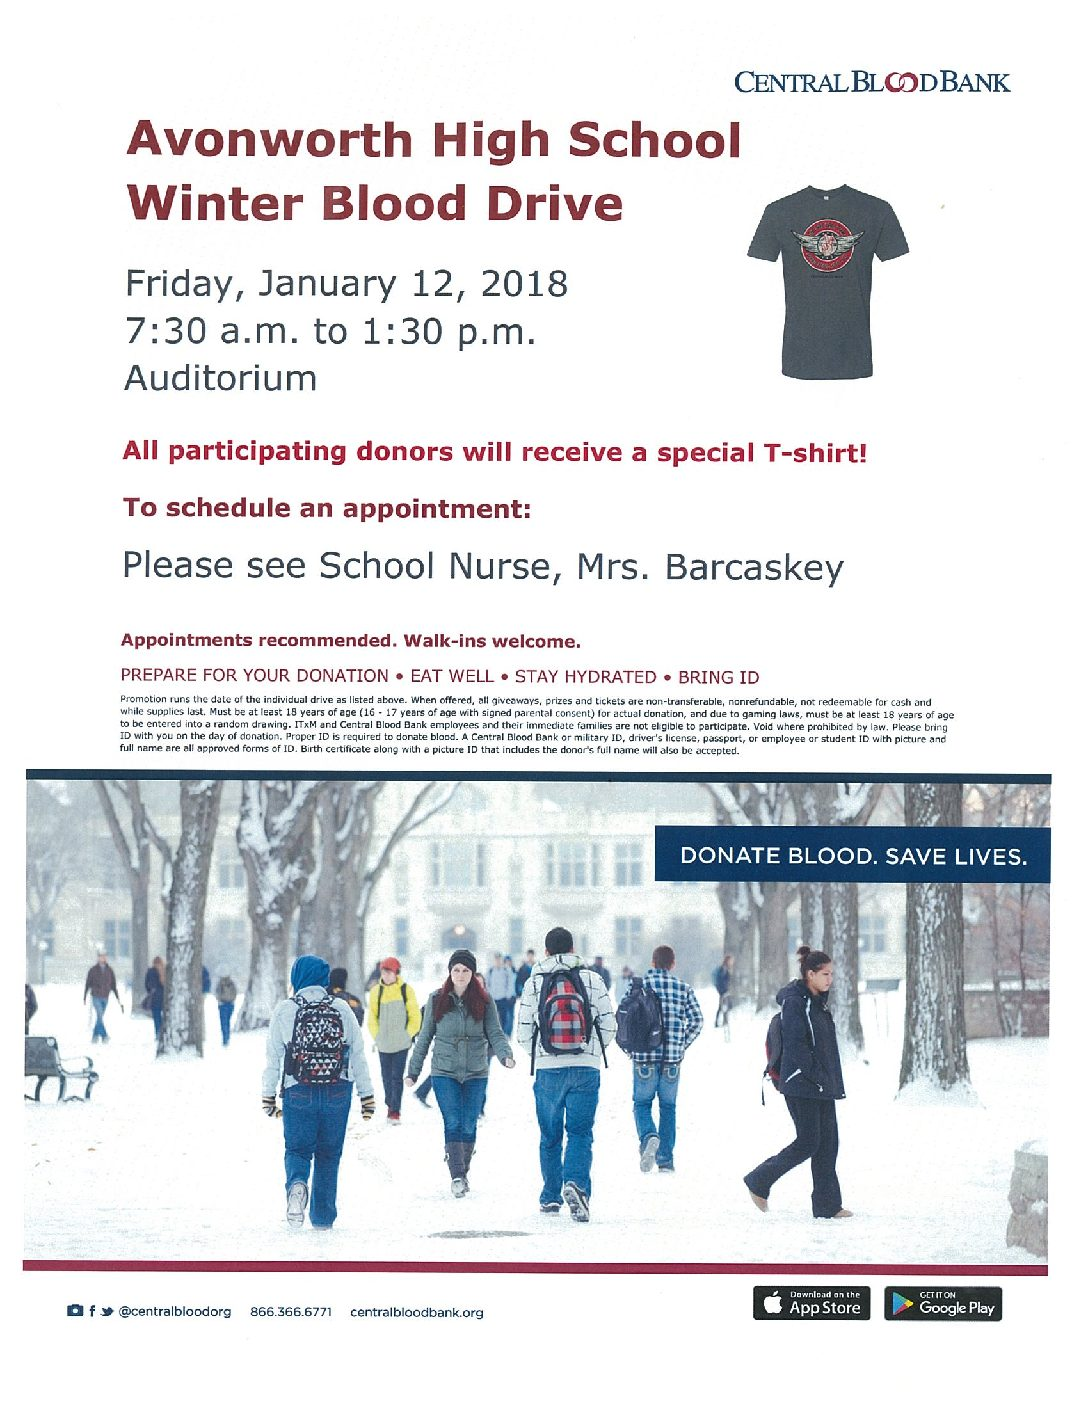 Be a Lifesaver – Blood Drive Friday Jan 12th